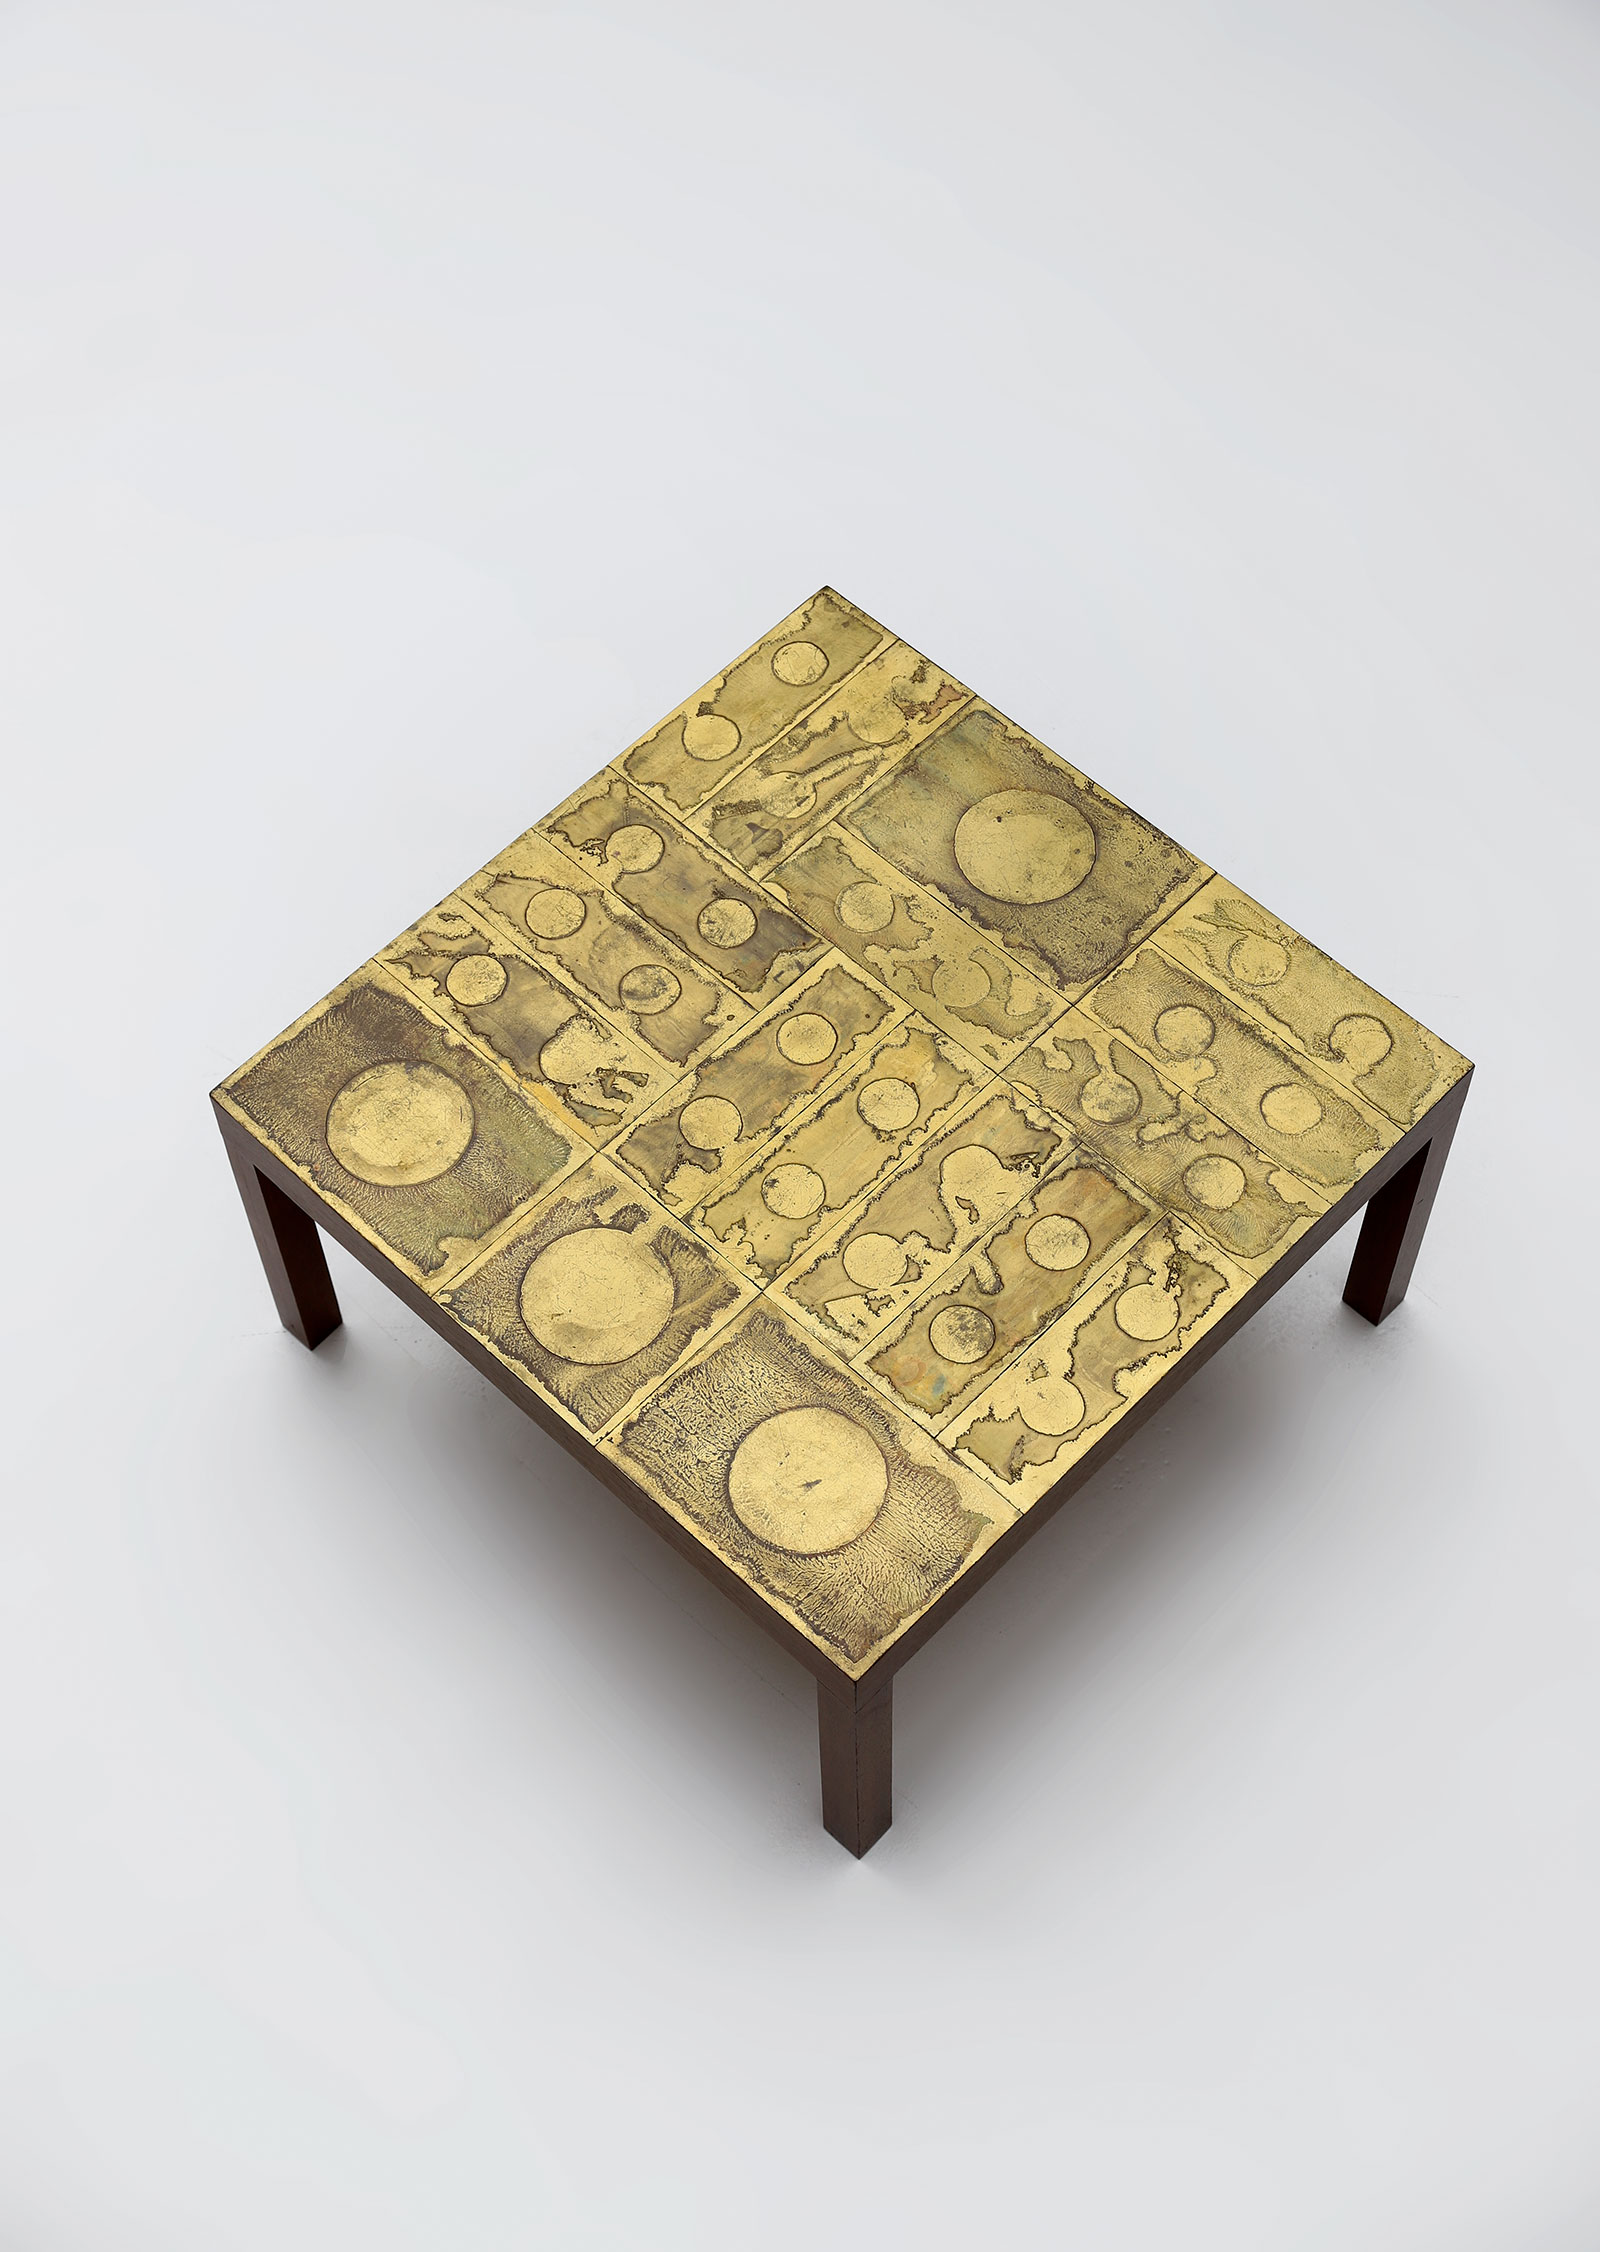 Willy Daro Brass etched Coffee Table 1970simage 6